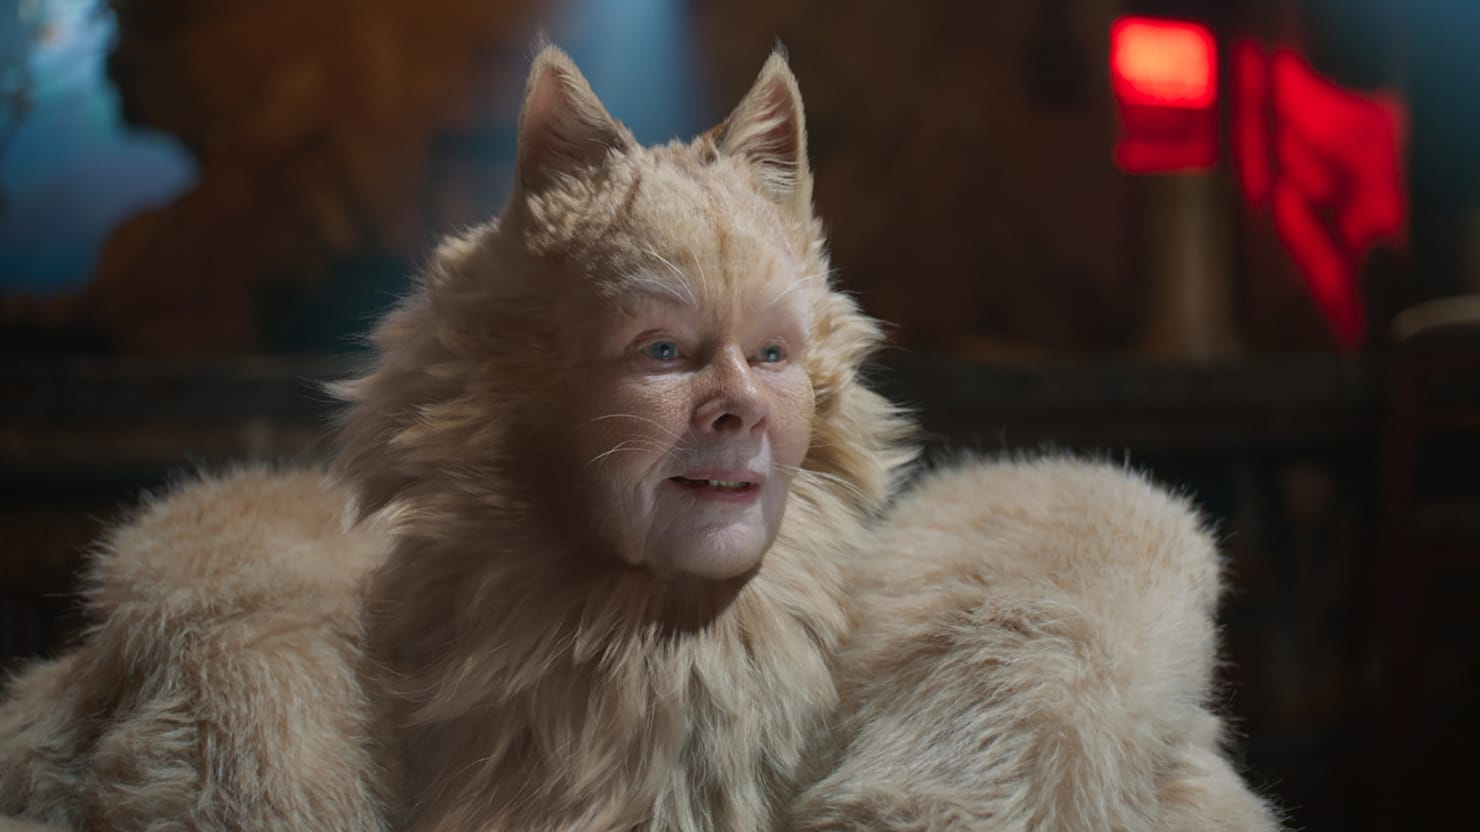 The 'CATS' Movie Is a Disaster Filled With Joyless Pussies